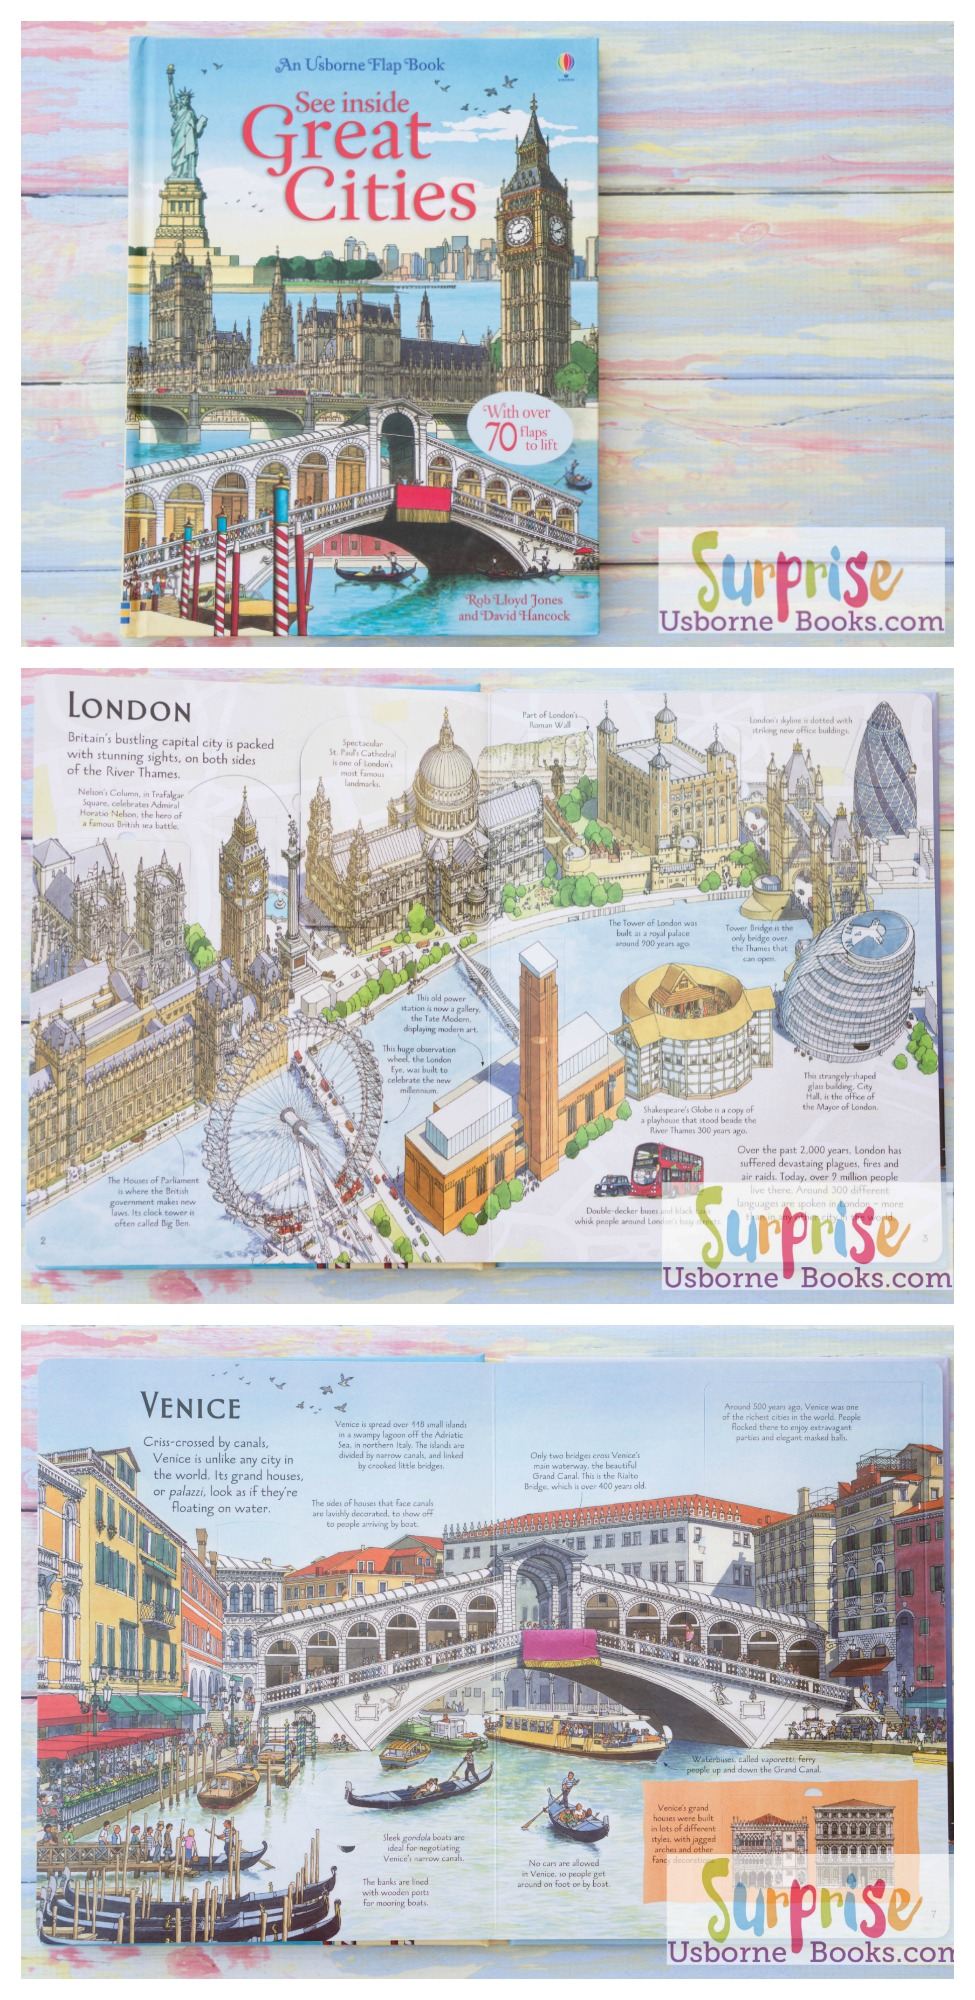 See Inside Great Cities - Surprise Usborne Books